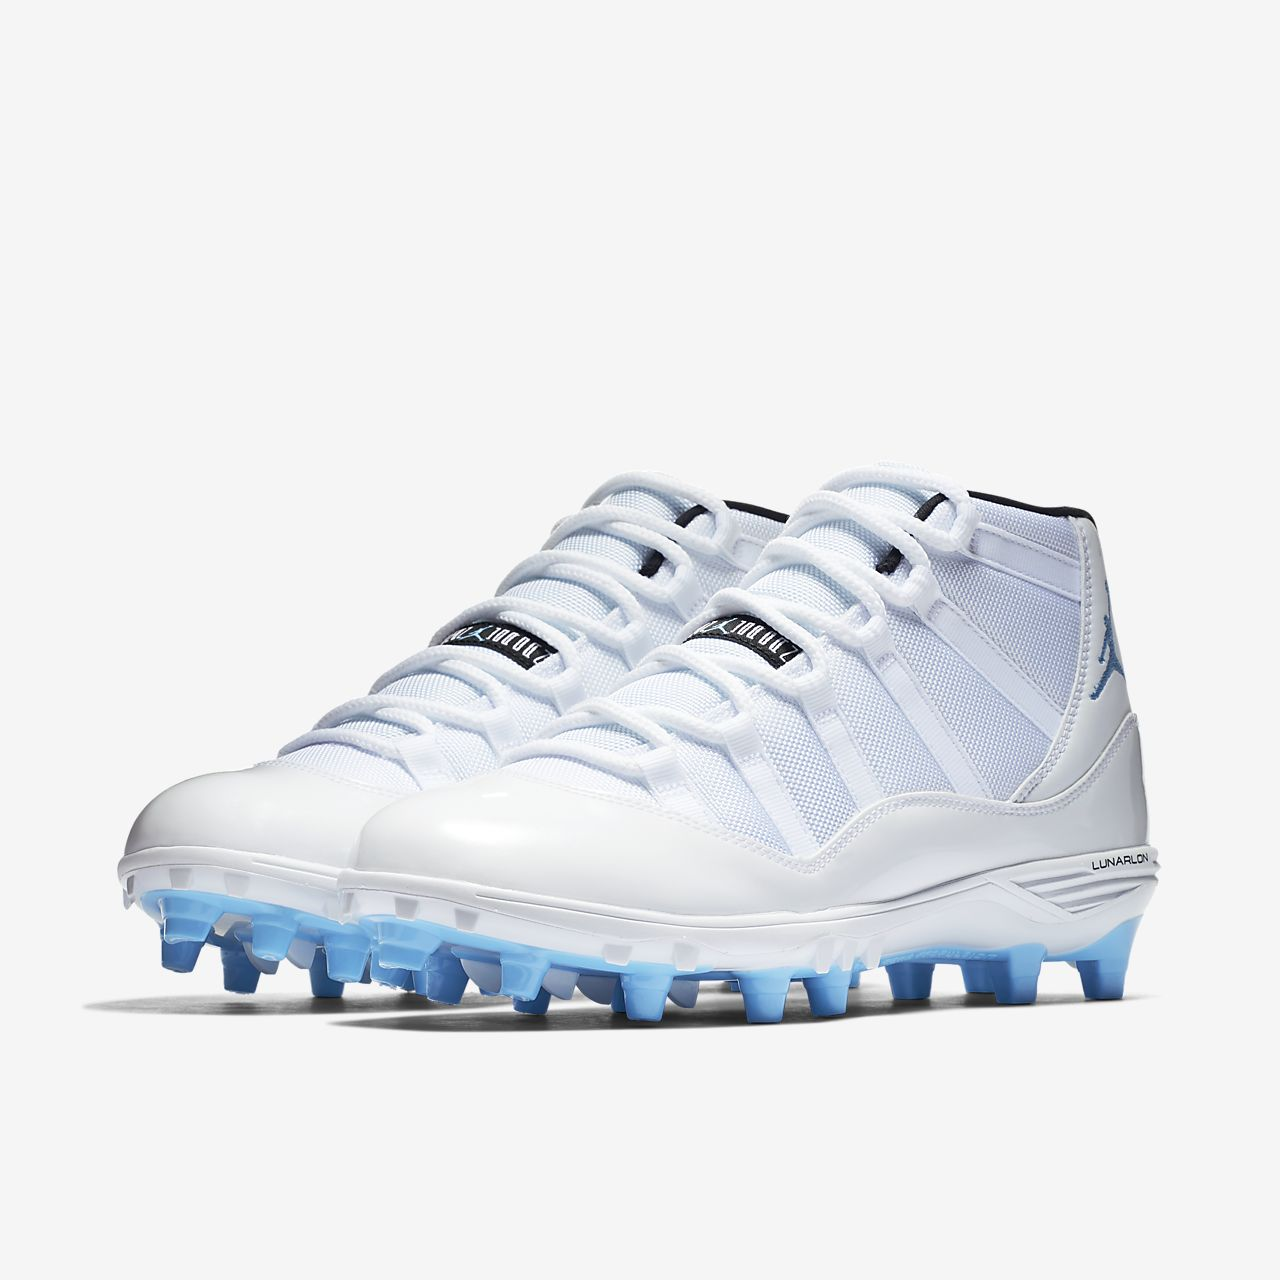 d988e8b65831 Jordan XI Retro TD Men s Football Cleat. Nike.com